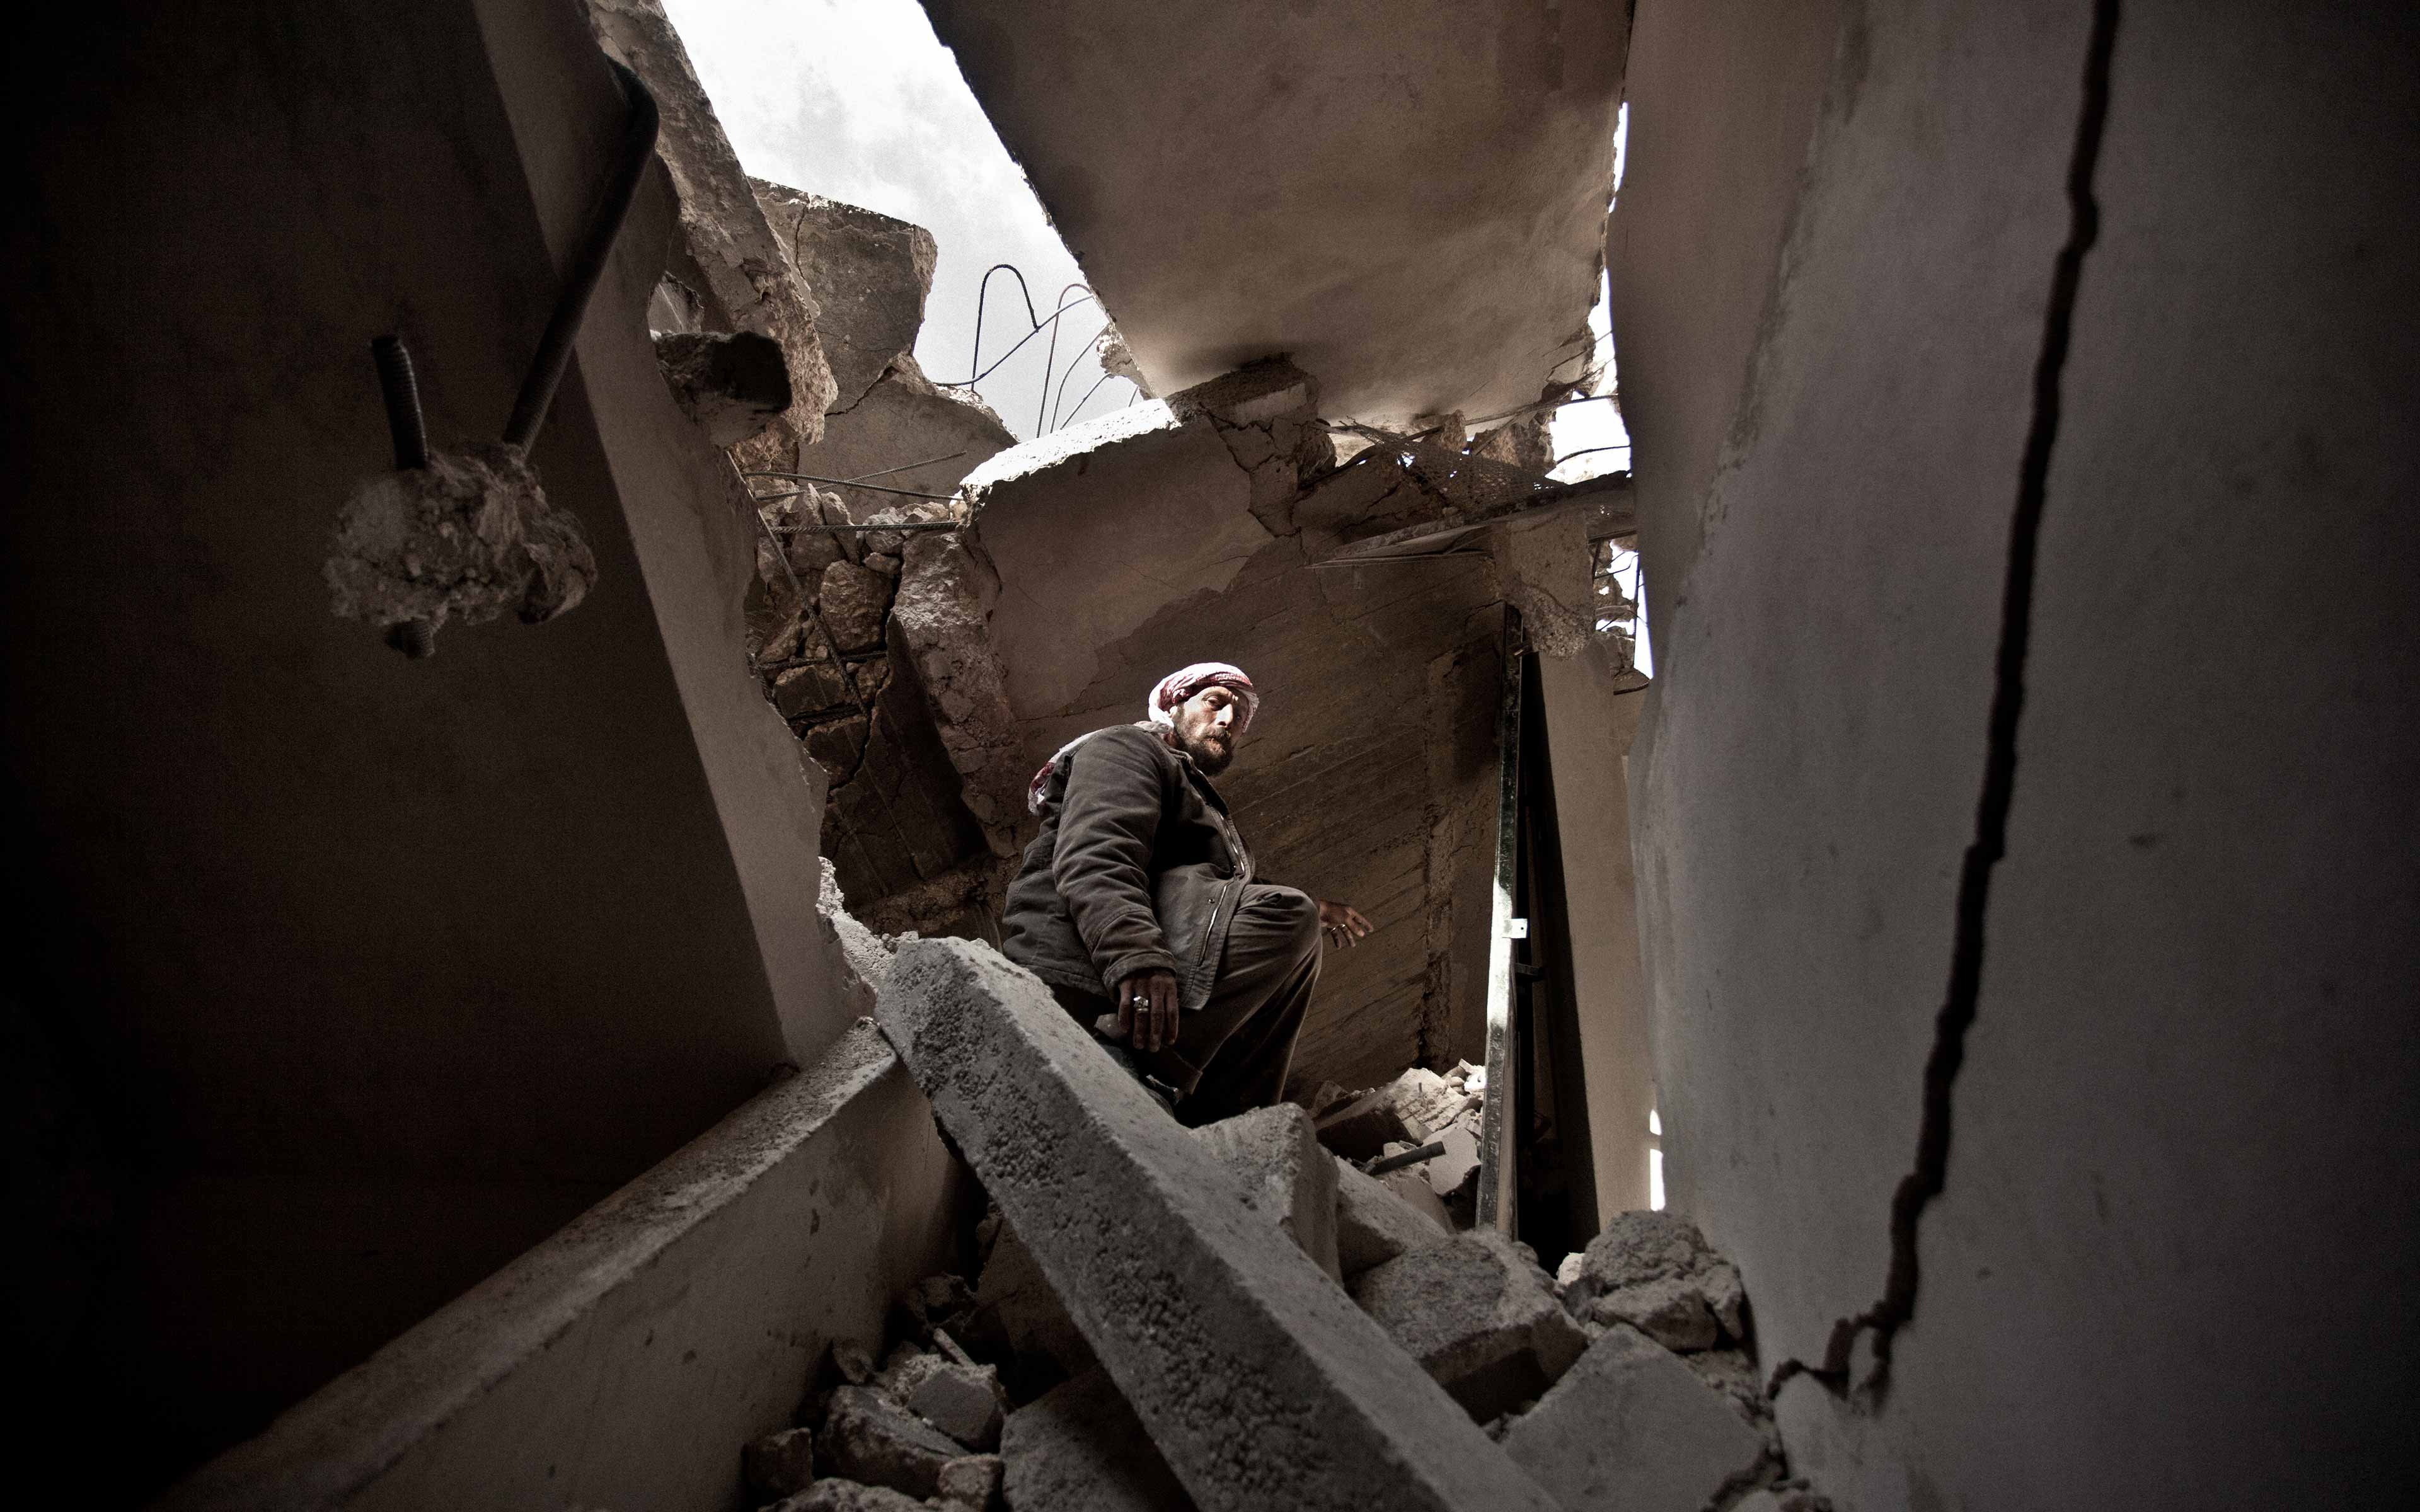 """Abu makes his way through the wreckage of his home in Aleppo in March 2013. The community was struck by a missile, leaving scores dead, including Abu's wife and two daughters. """"I think what moved me most was the solitude with which he was left,"""" says Pablo Tosco, who was an independent photographer at the time and helped Abu carry the bodies down the stairs."""